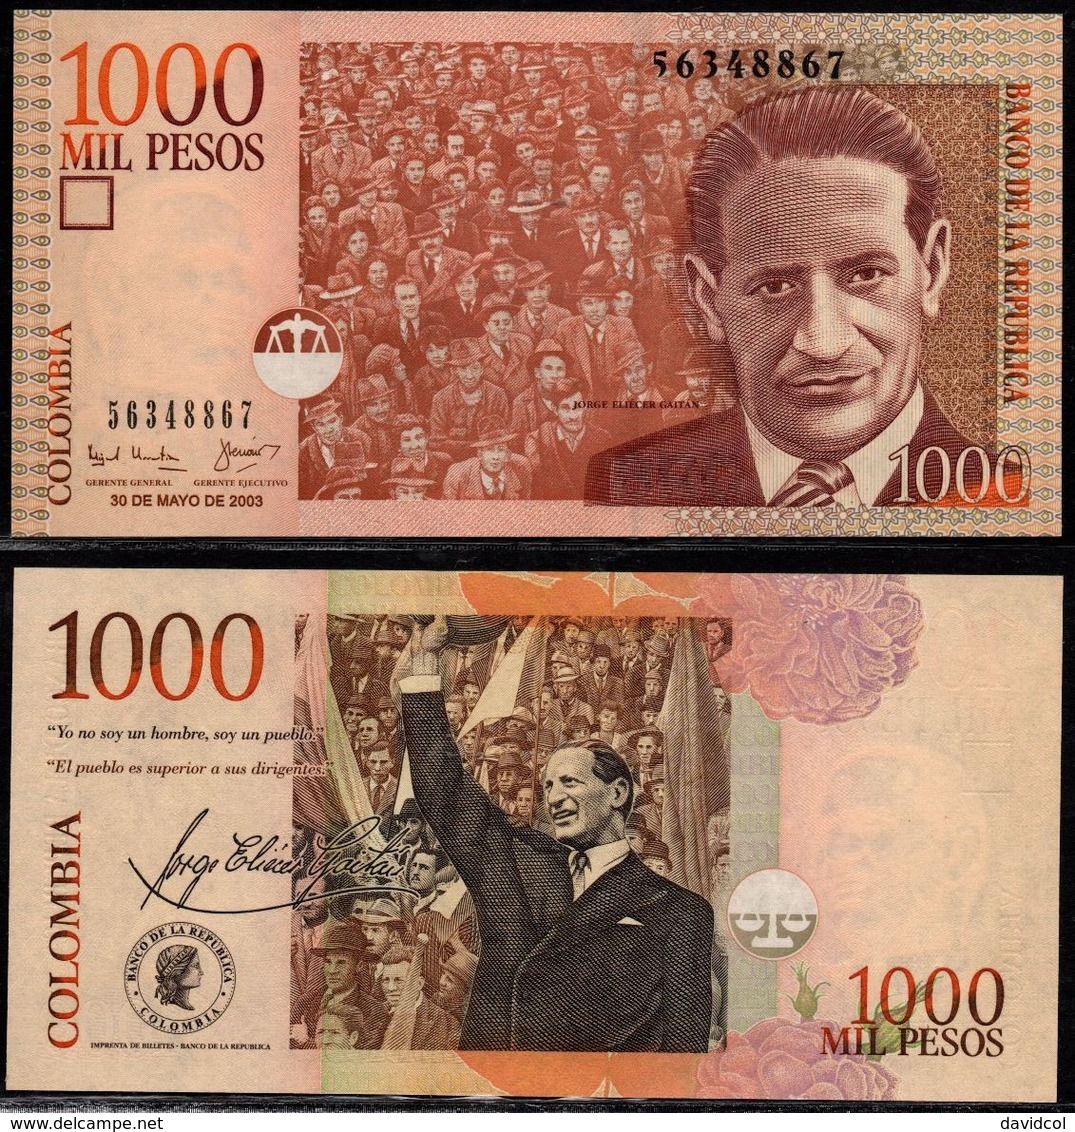 COLOMBIA - 2003- MIL PESOS  ( $ 1000 ) - UNCIRCULATED. CONDITION 9/10 - Colombie